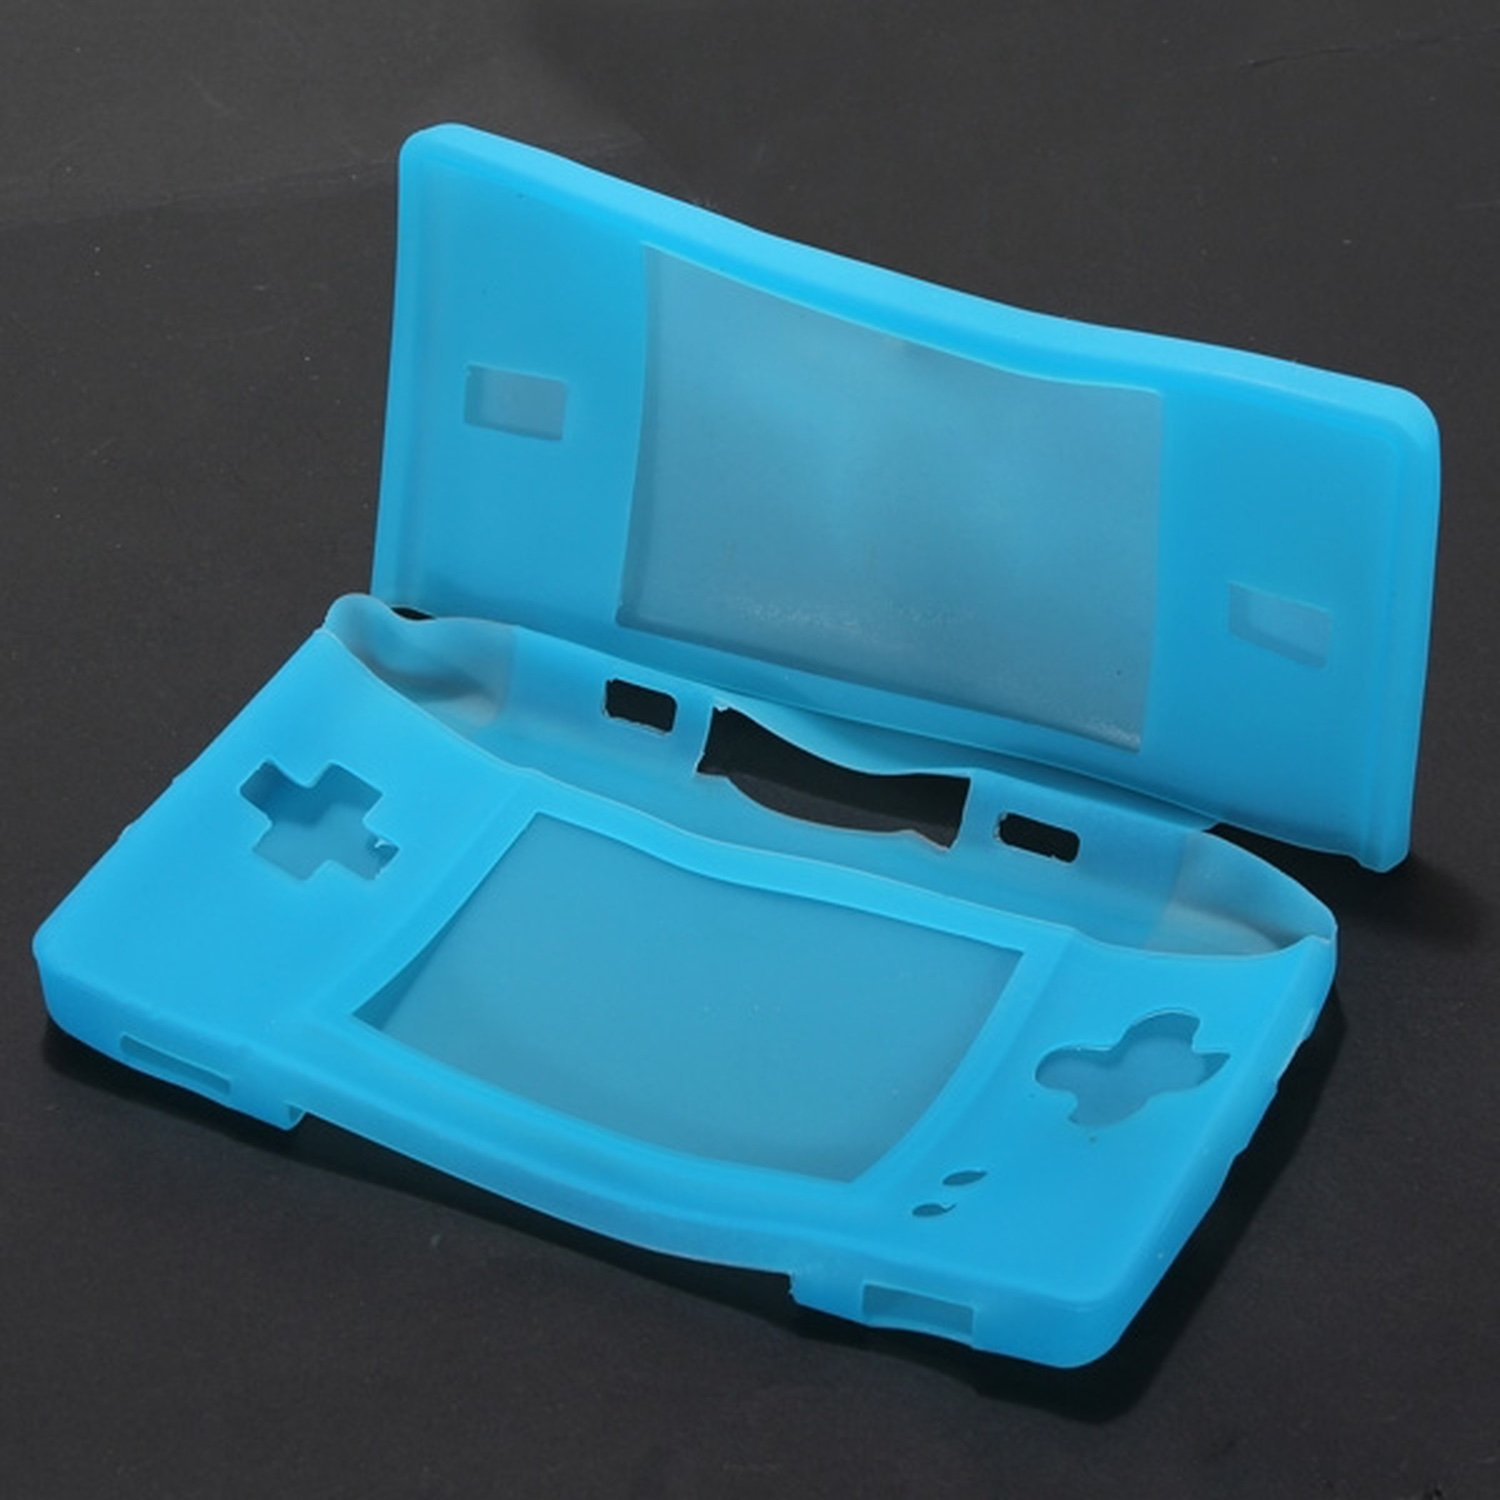 Nintendo DS Protective Skin for DS Lite BLUE nintendo ds lite stylus pen retractable 2 pcs white